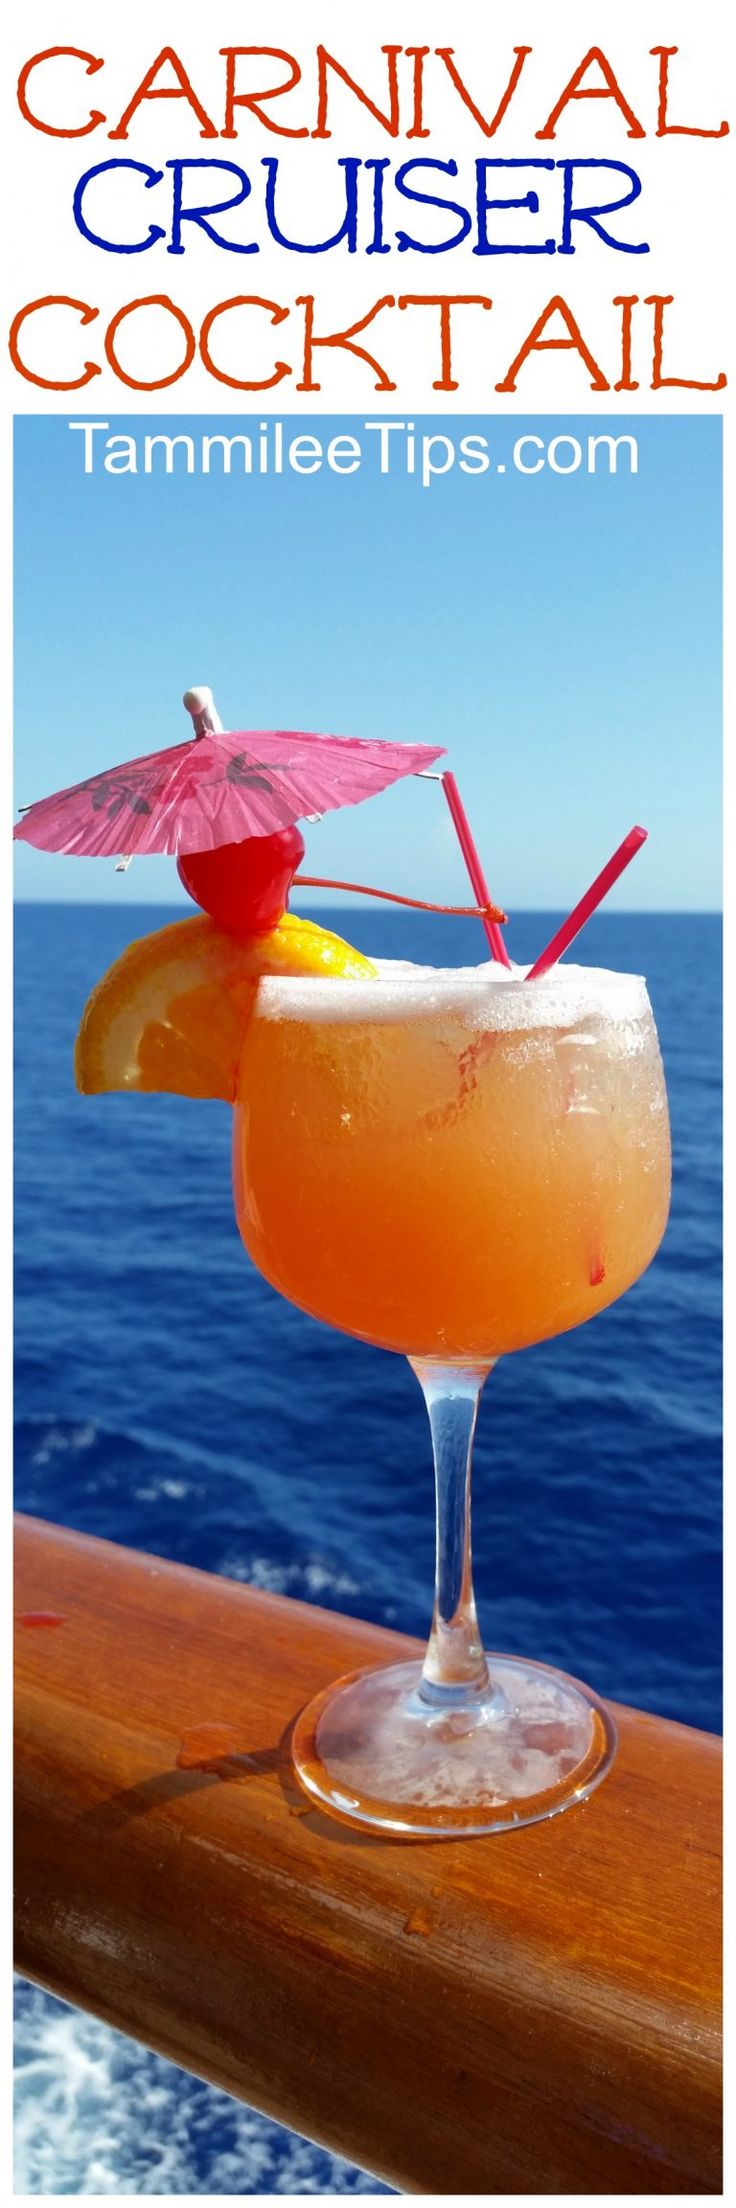 Enjoy your favorite Carnival Cruise Cocktail at home with this delicious Carnival Cruiser Cocktail Recipe! Bring home the tropics and share with your friends. This tropical cocktail is easy to make and tastes delicious!